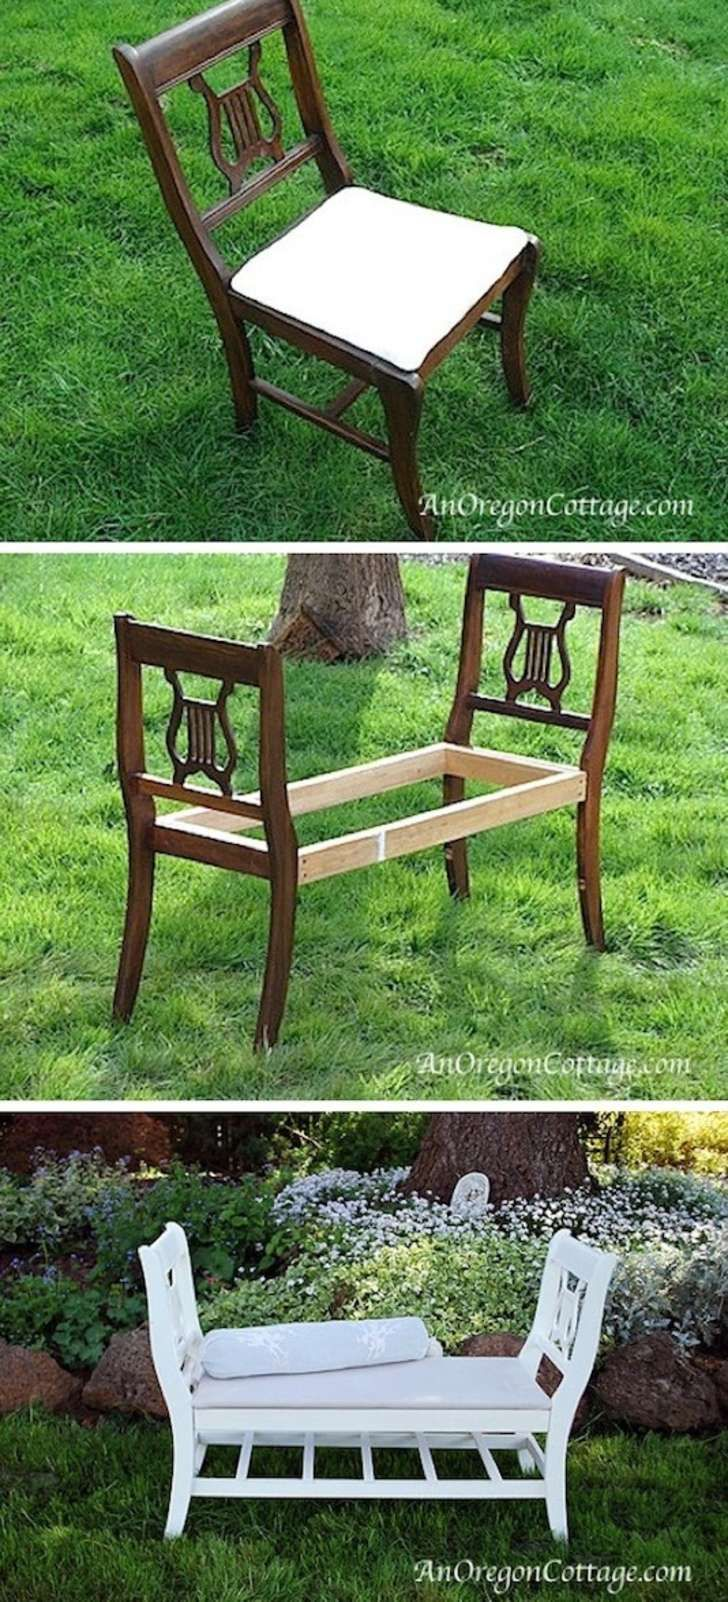 14 Clever DIY Hacks That Will Make You Fall In Love With Your Furniture Again! - blessings.com